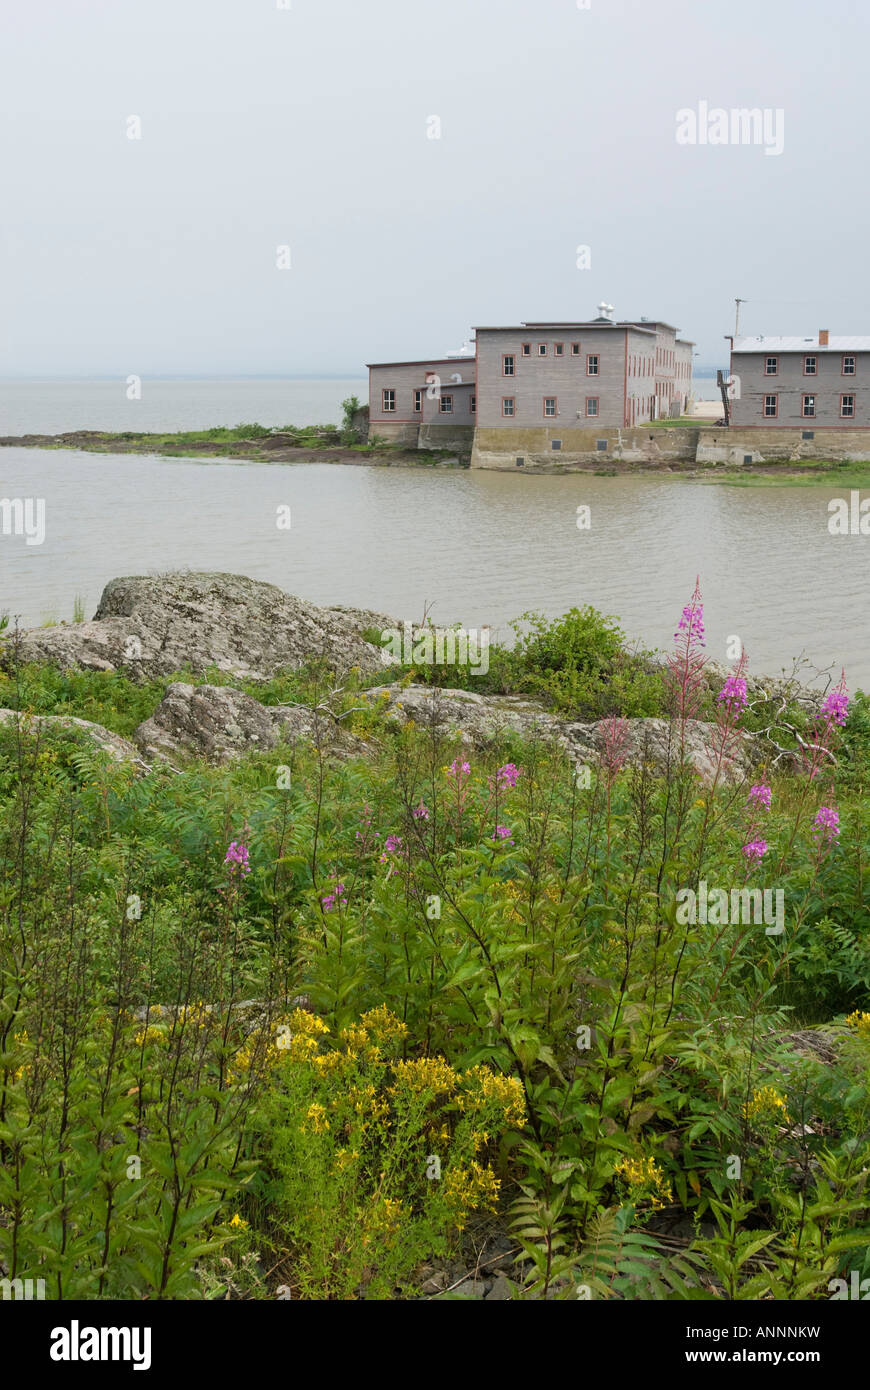 Grosse Île and the Irish Memorial National Historic Site, province of Quebec, Canada. Stock Photo